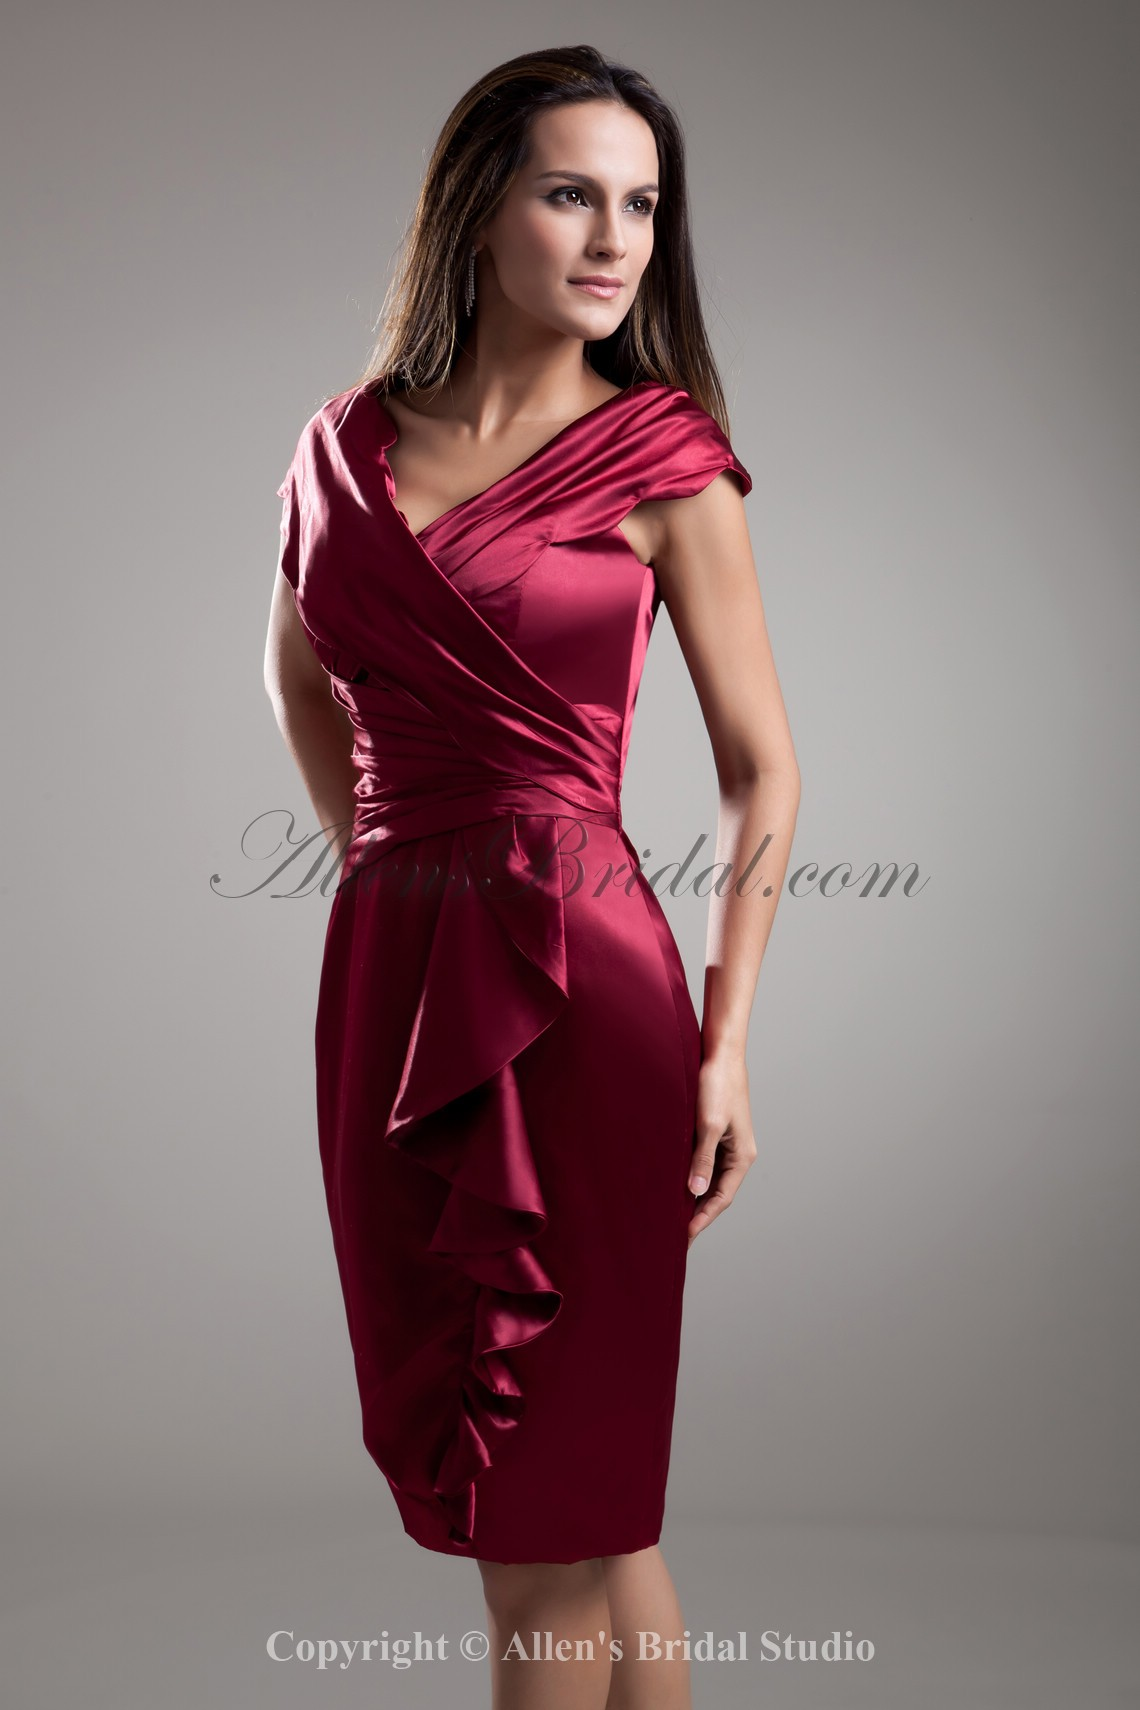 /711-5694/satin-v-neck-neckline-knee-length-sheath-cap-sleeves-cocktail-dress.jpg